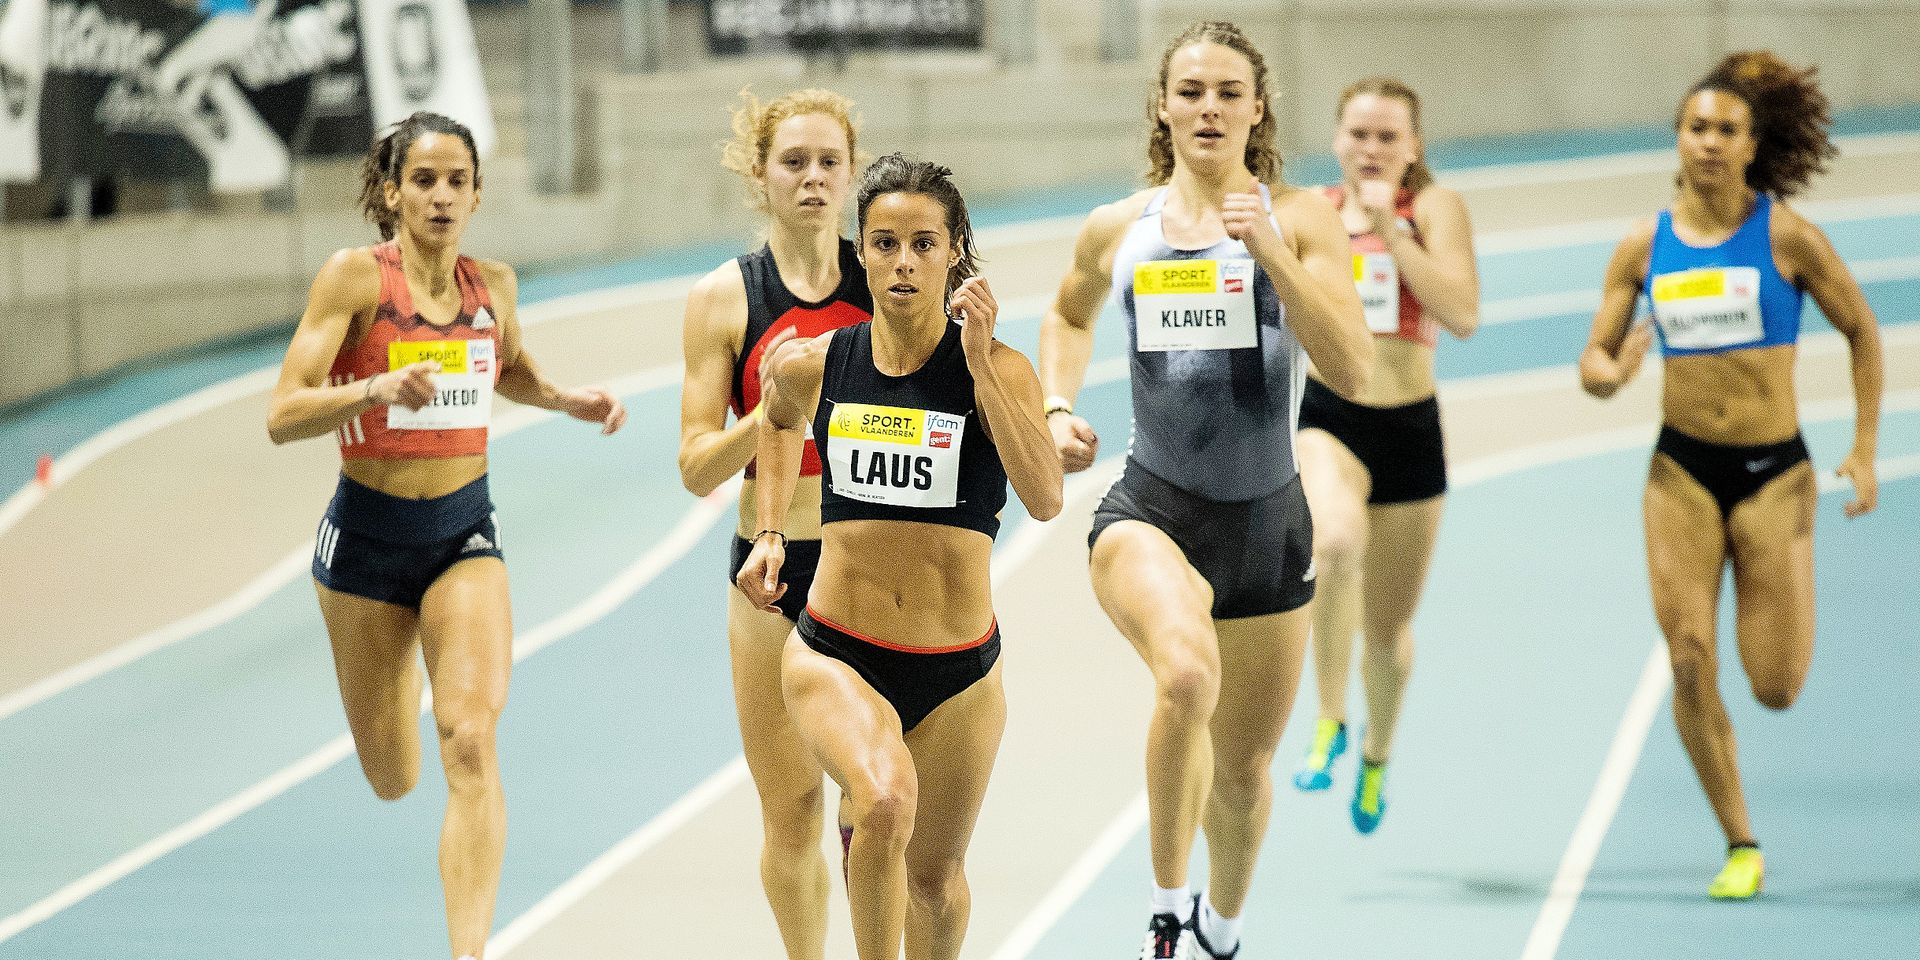 Belgian Camille Laus pictured in action during the Belgian Championships indoor Athletics, Saturday 09 February 2019 in Gent. BELGA PHOTO JASPER JACOBS